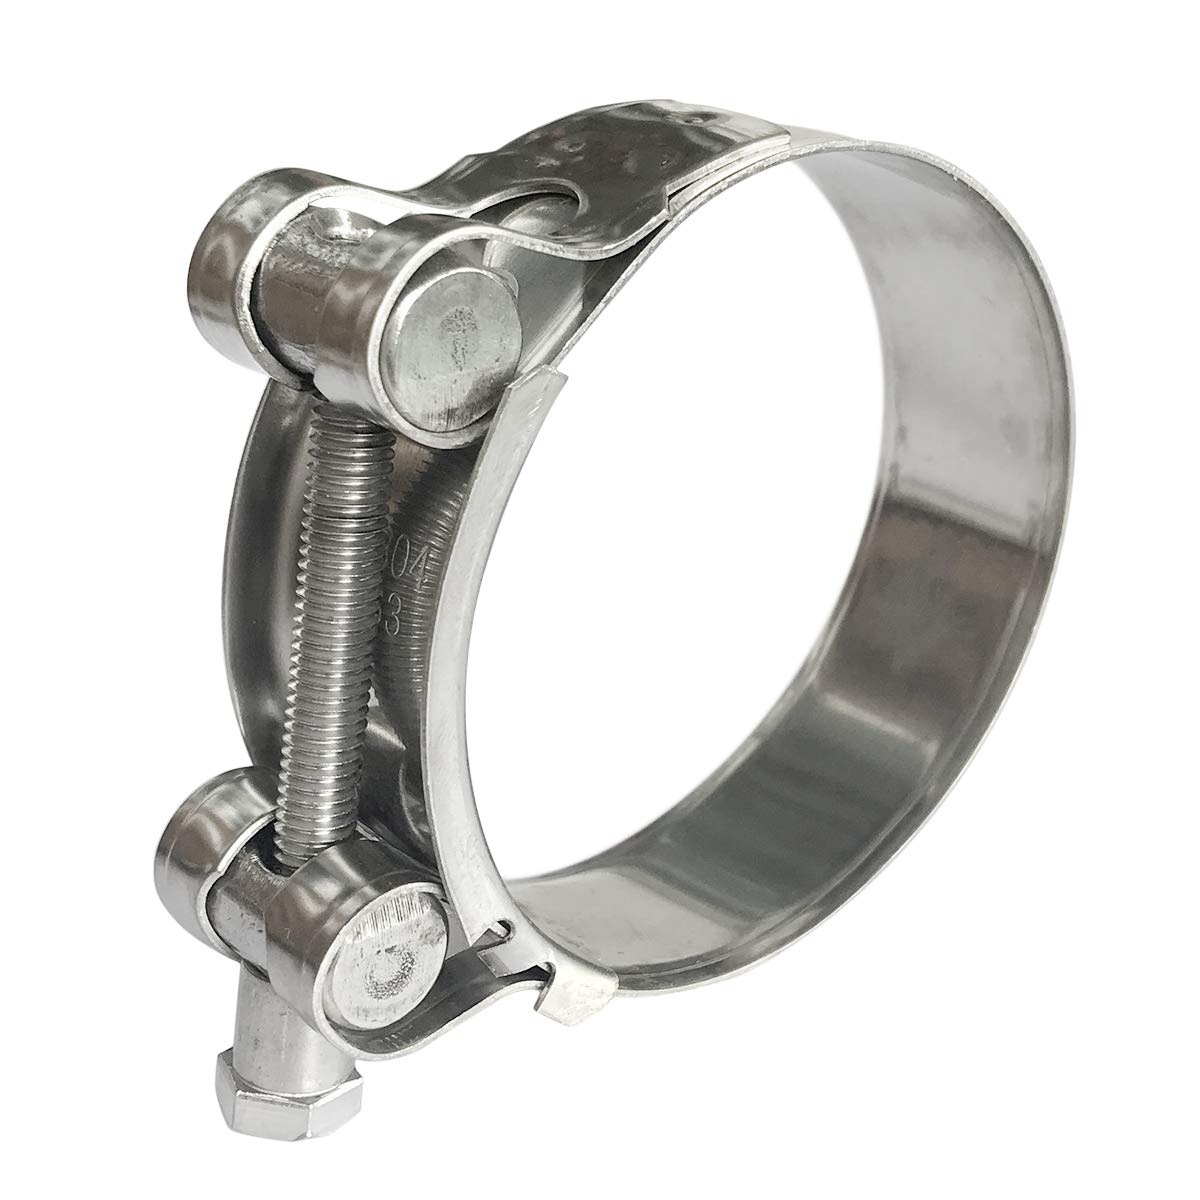 YUEPIN 2 Pcs T-Bolt Hose Clamp 304 Stainless Steel Tube Clamp 1.26-1.37//32-35mm